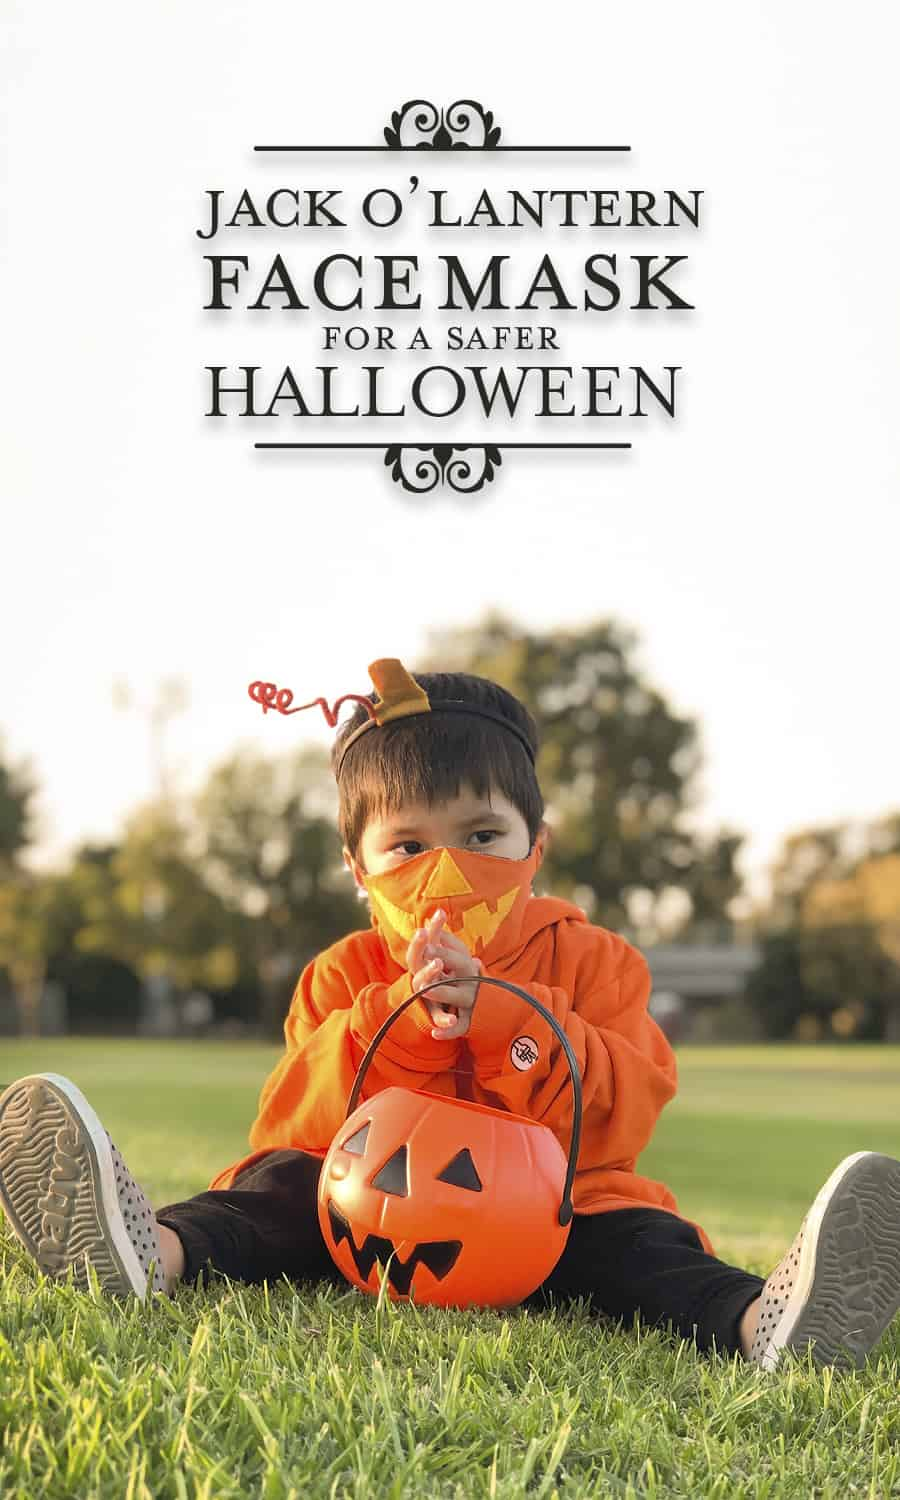 photo of young boy sitting in park wearing a jack-o-lantern face mask Halloween costume with a candy bucket